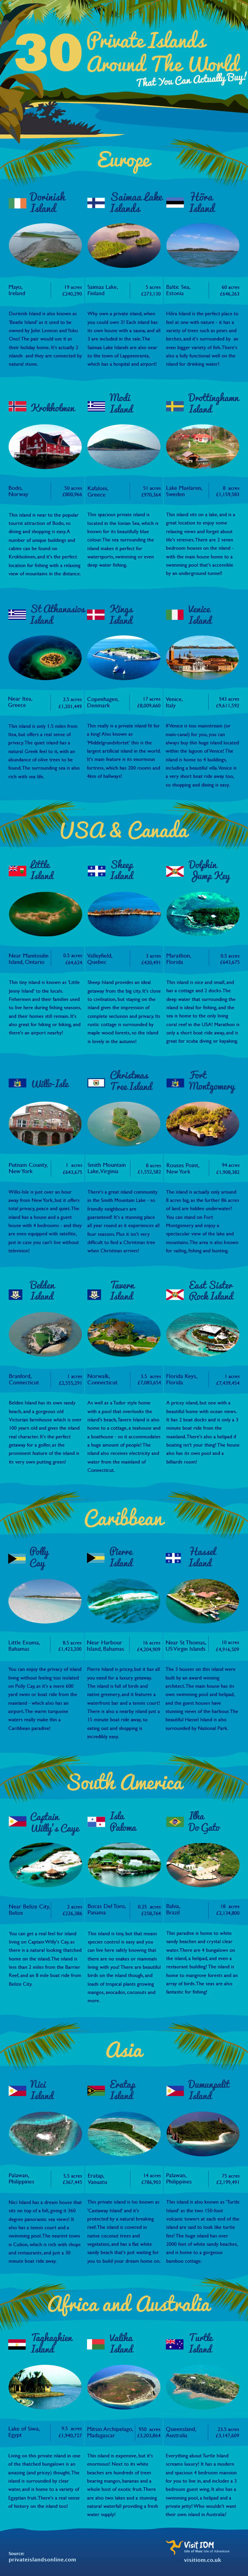 30 Private Islands You Can Actually Buy!